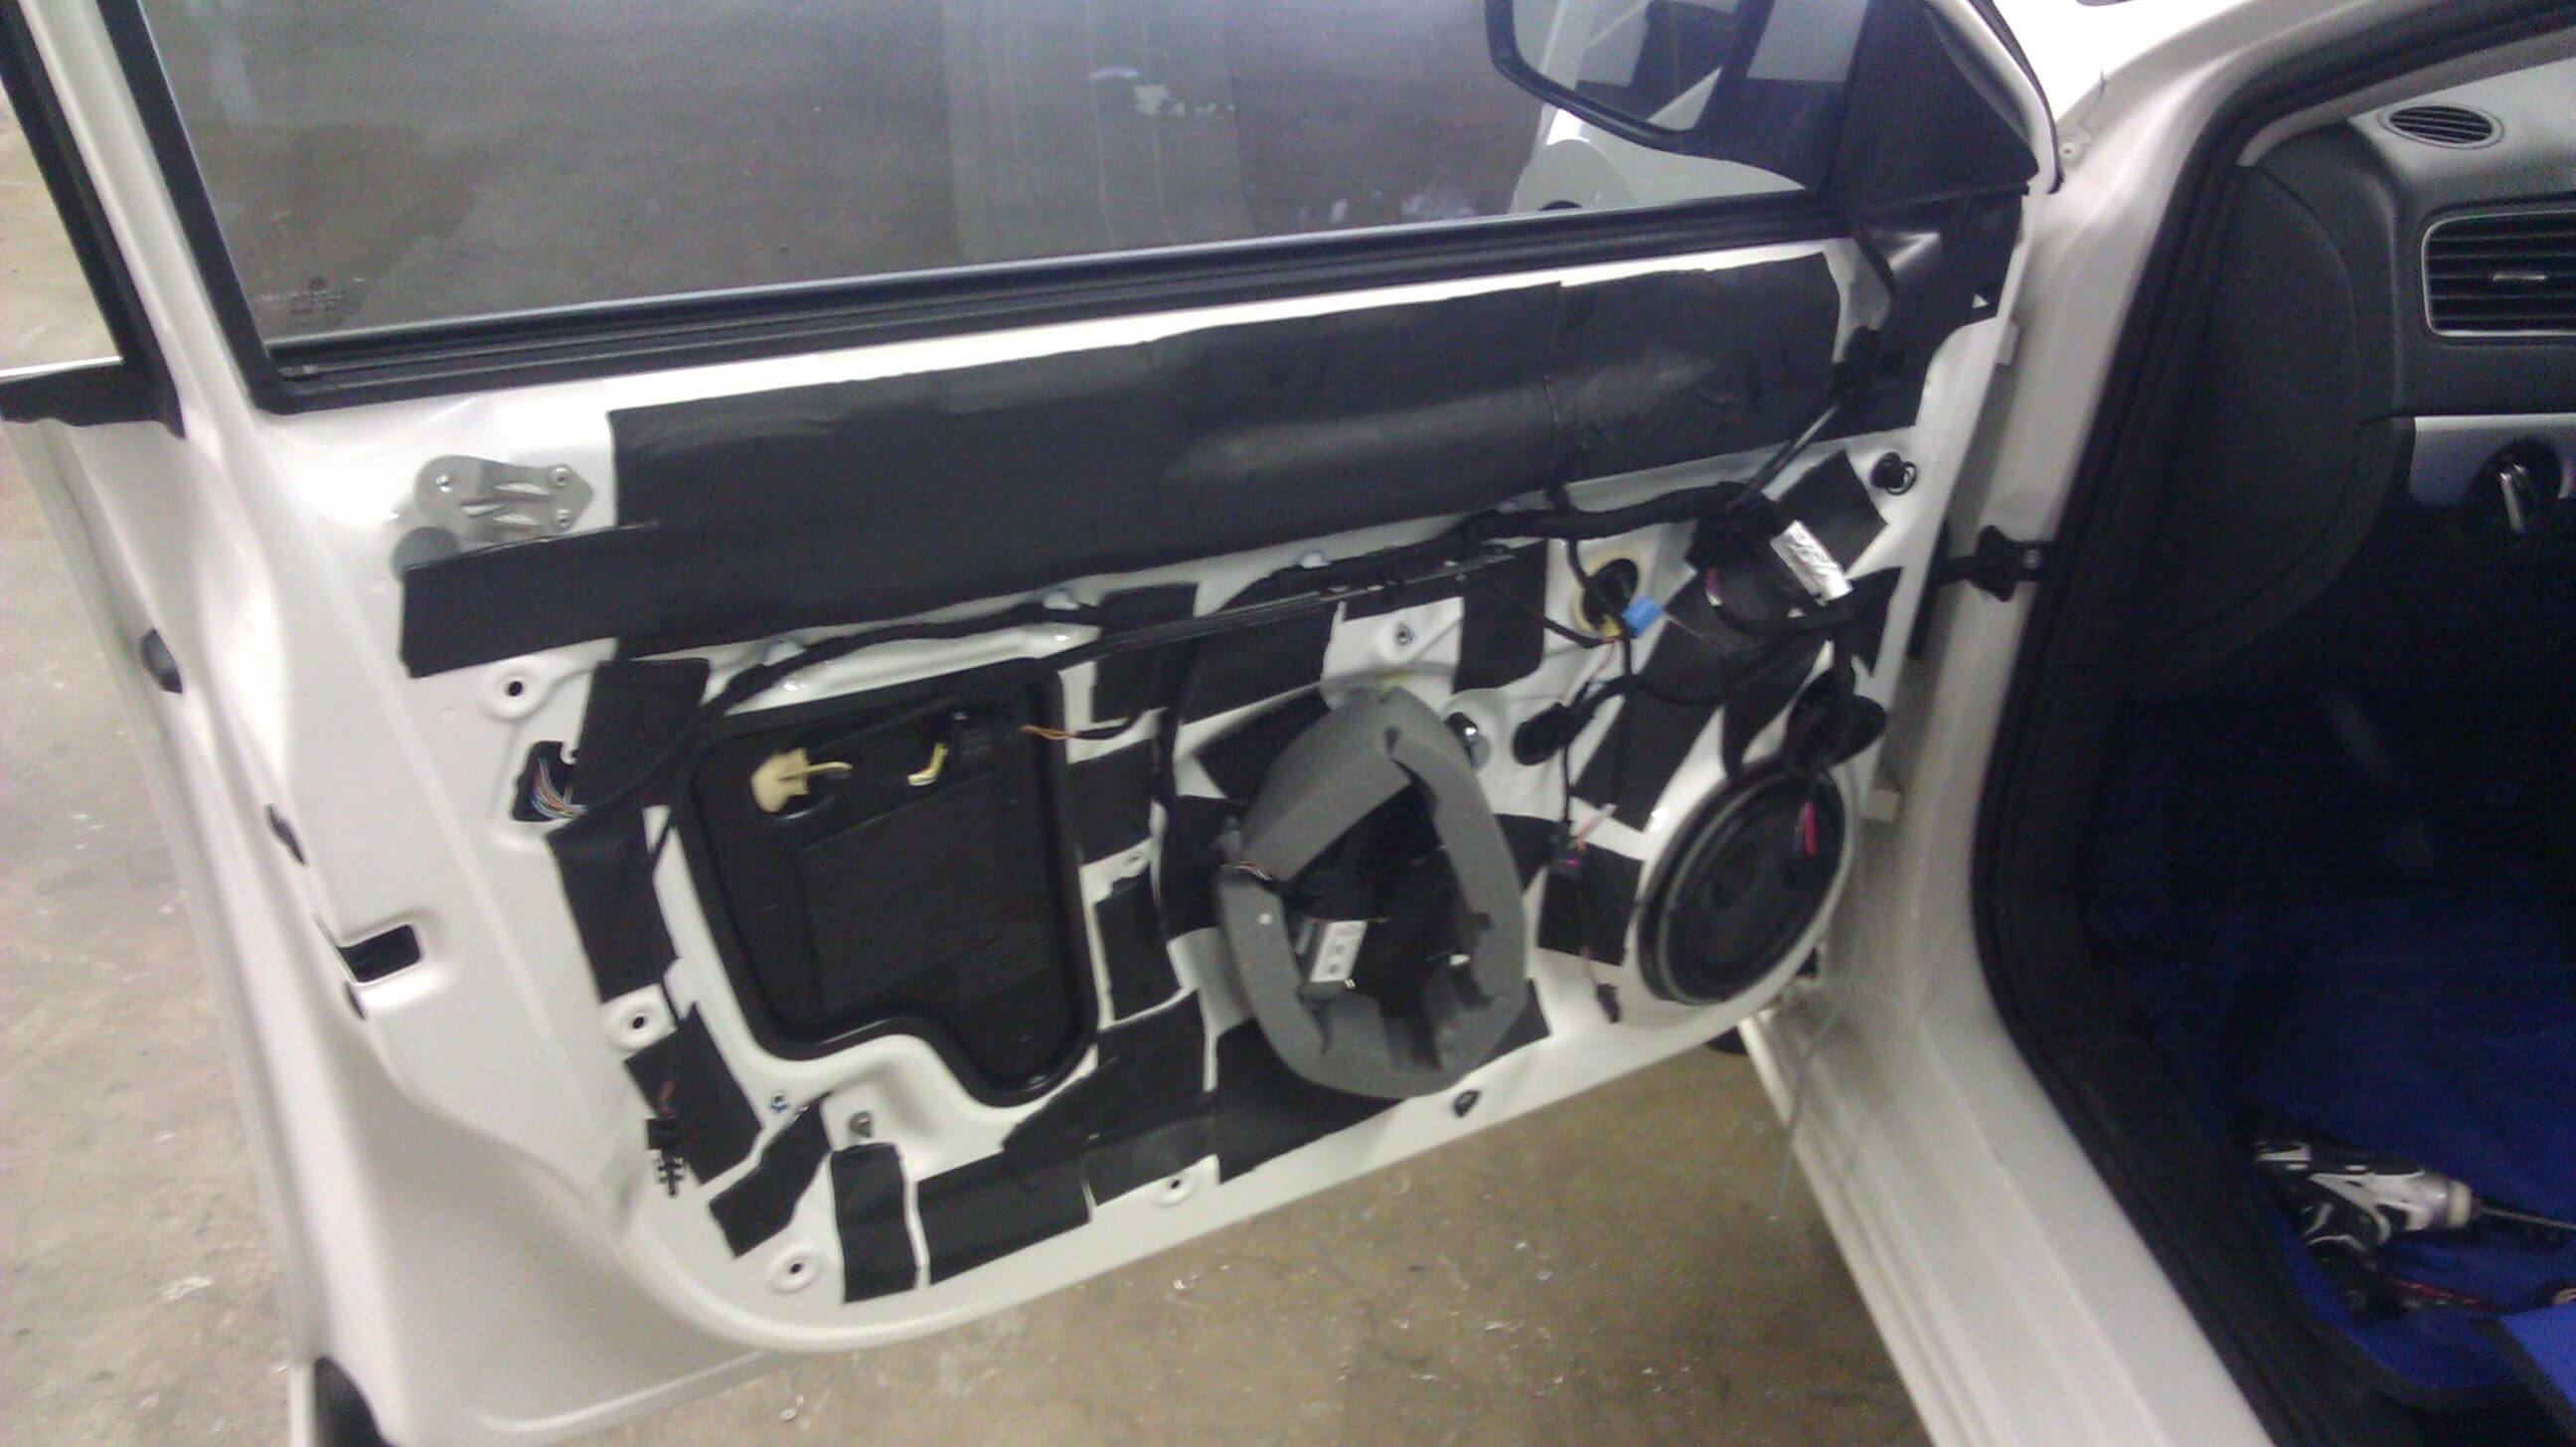 2011 VW Jetta sound system upgrade. & 2011 VW Jetta sound system upgrade. - Handcrafted Auto Marine ...